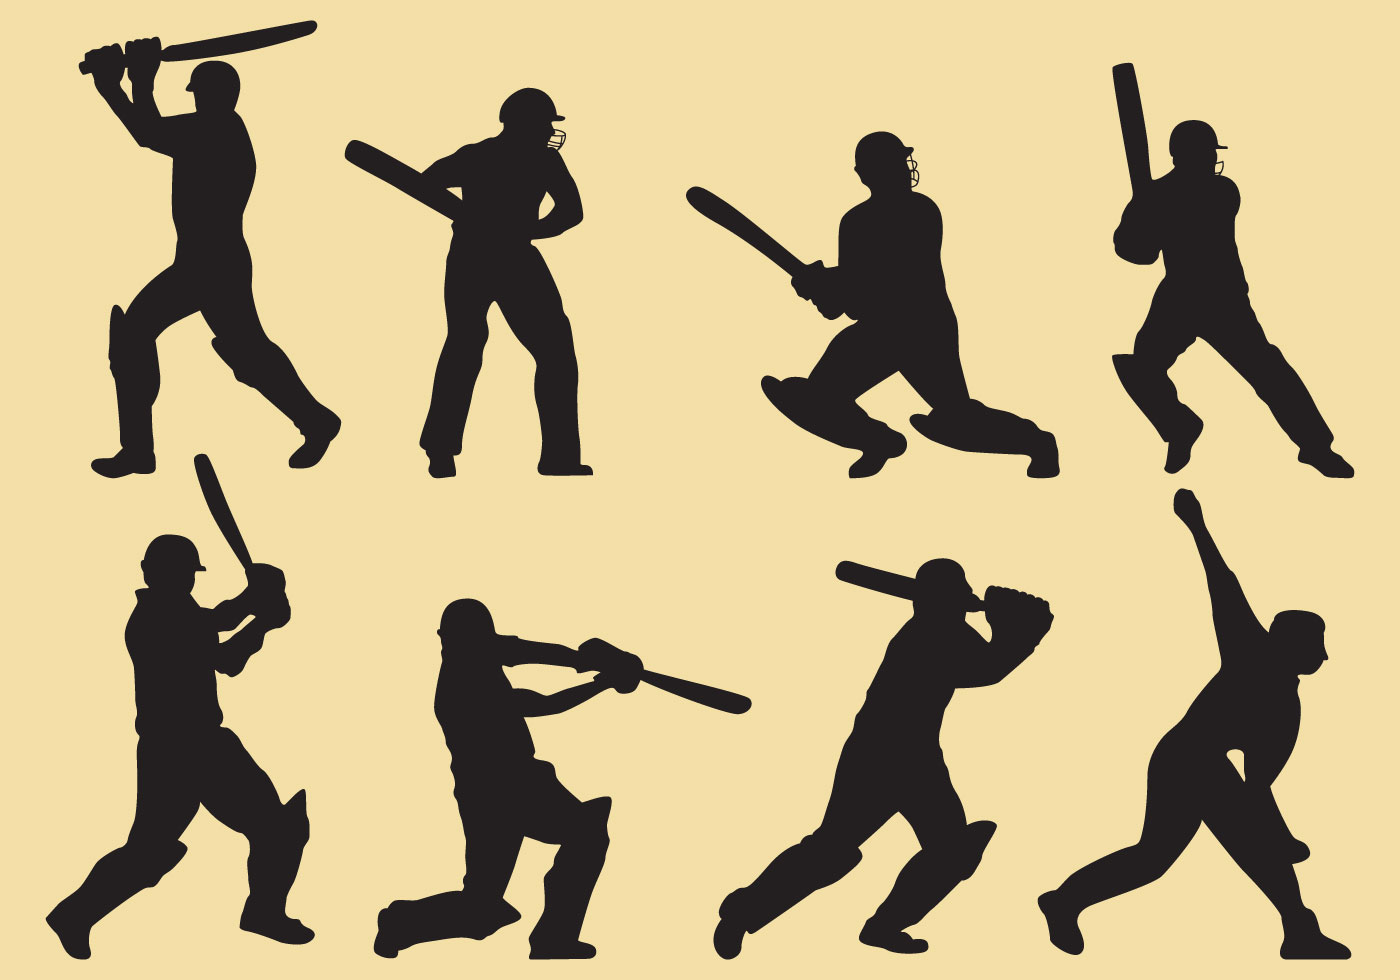 cricket player silhouettes download free vector art